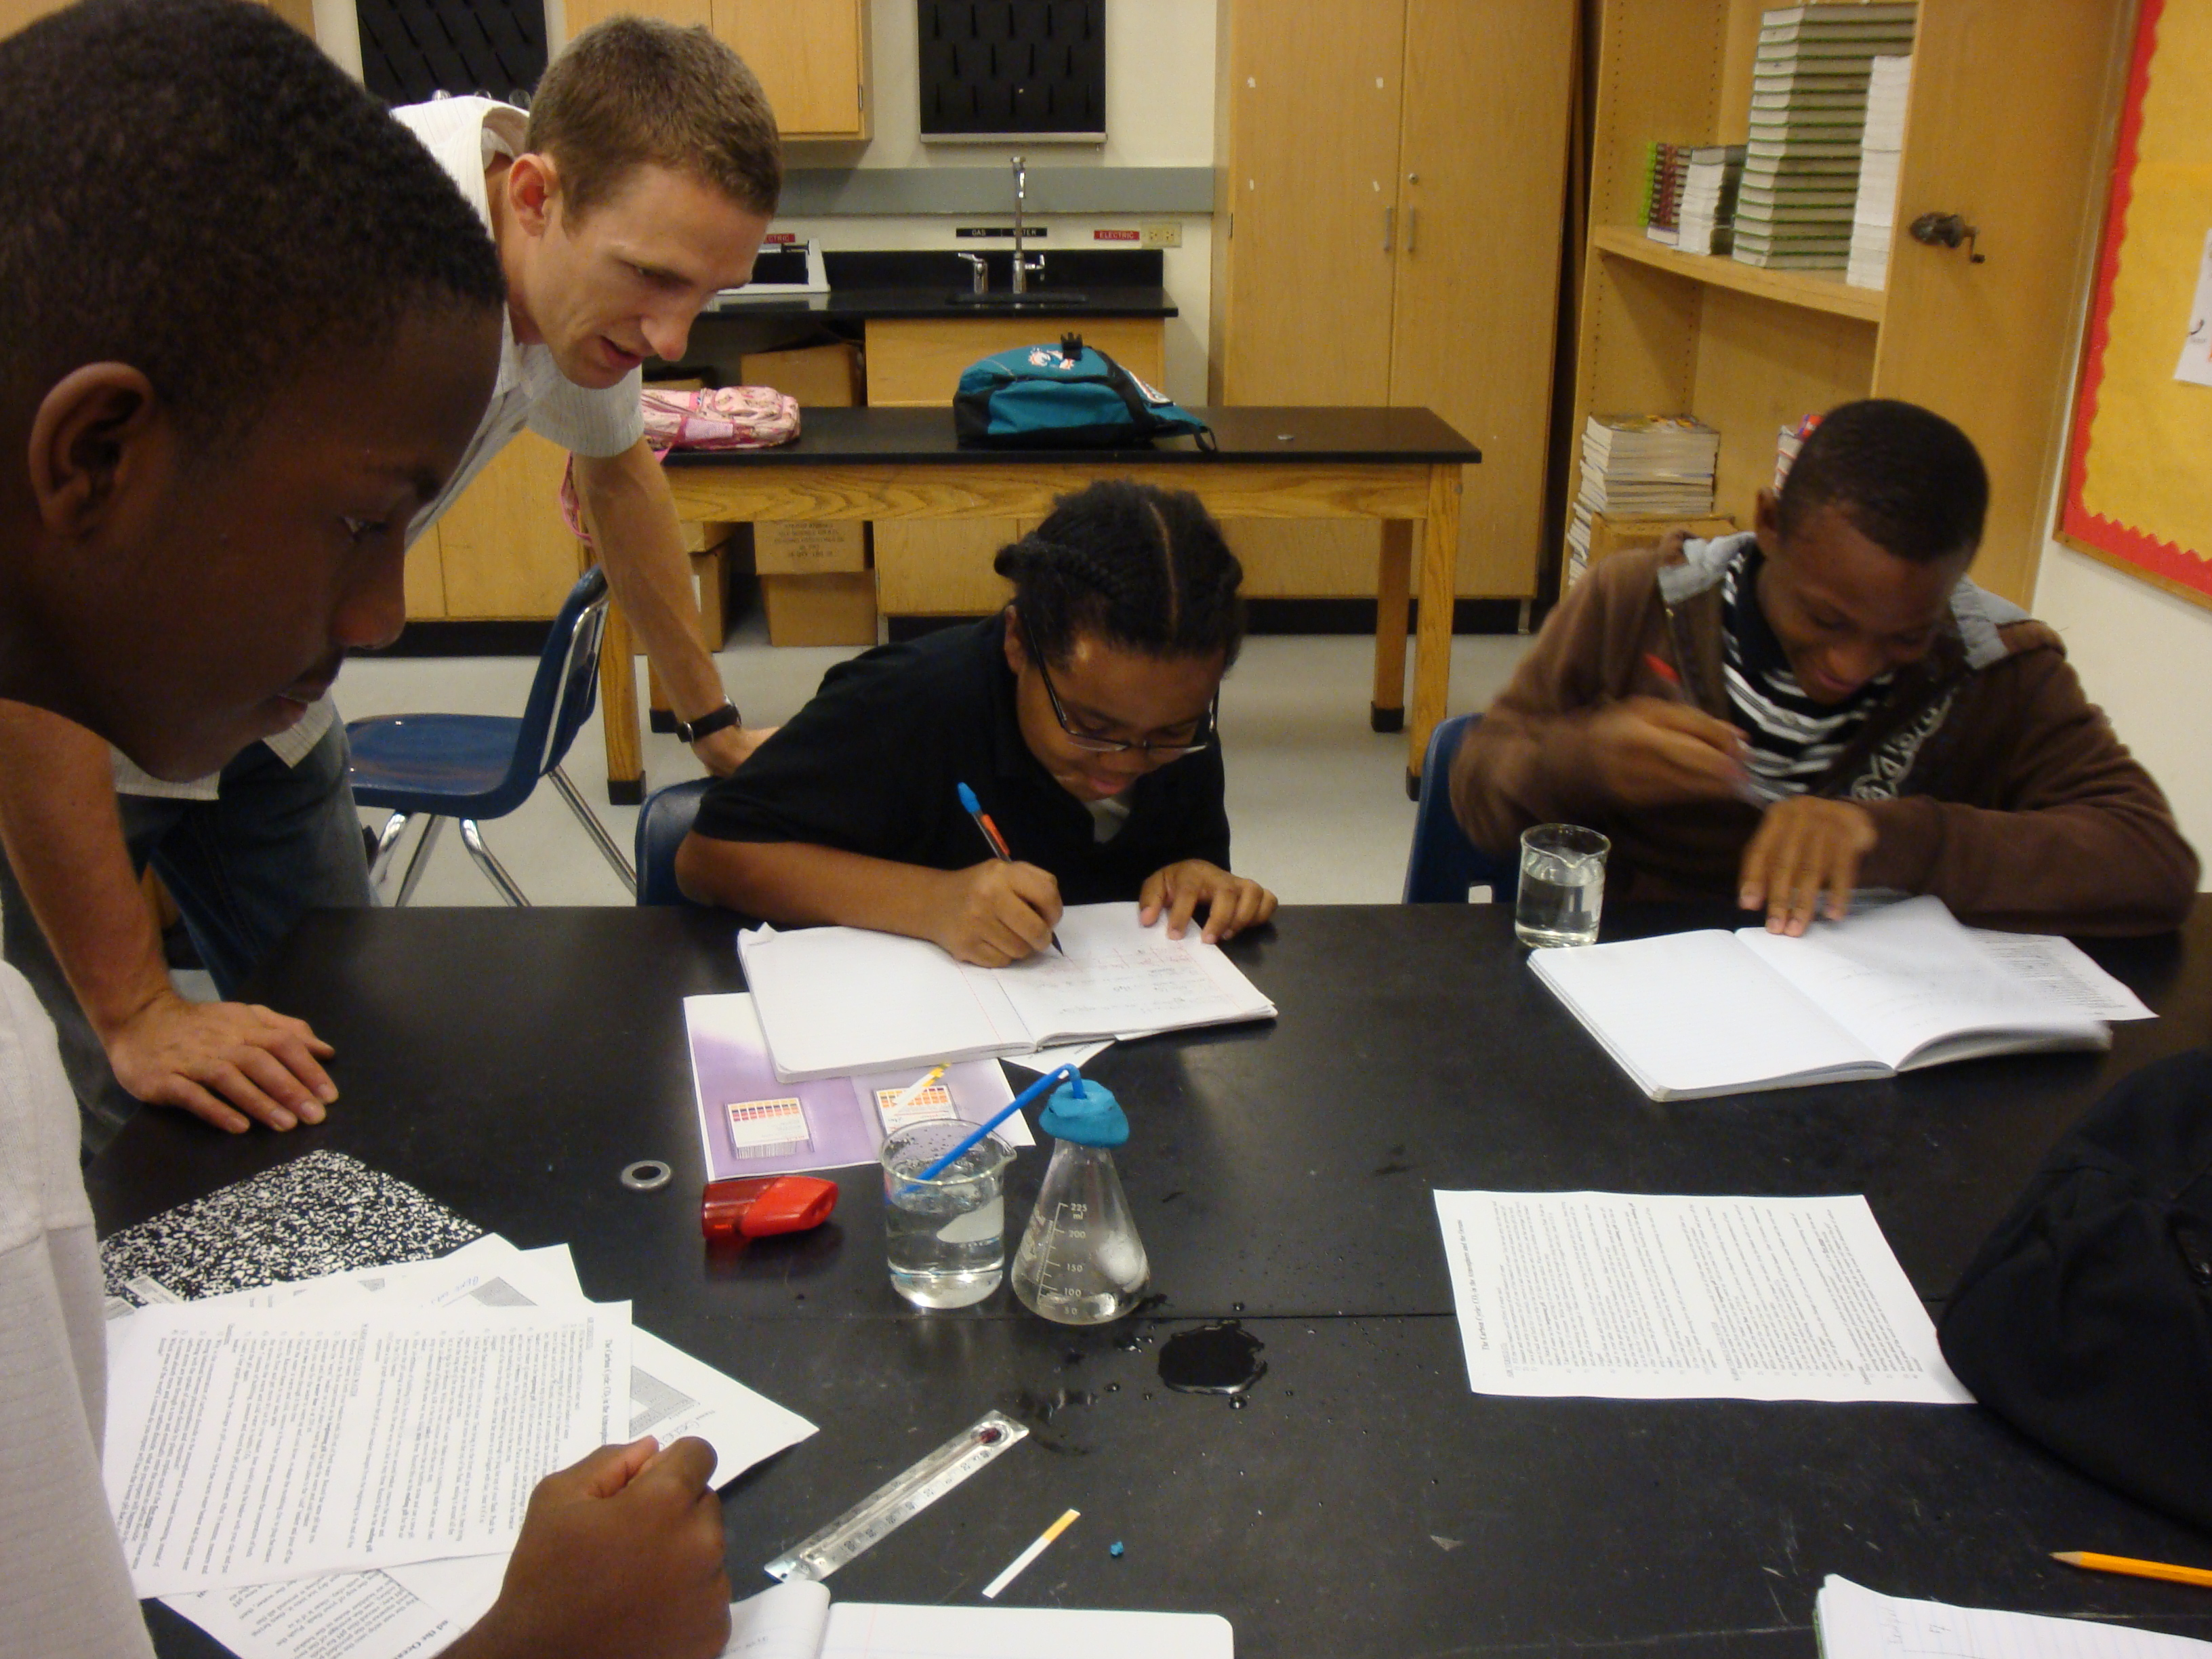 Sean Bignami conducting an ocean acidification lab activity at Carol City  Middle School as part of the Science Made Sensible program.